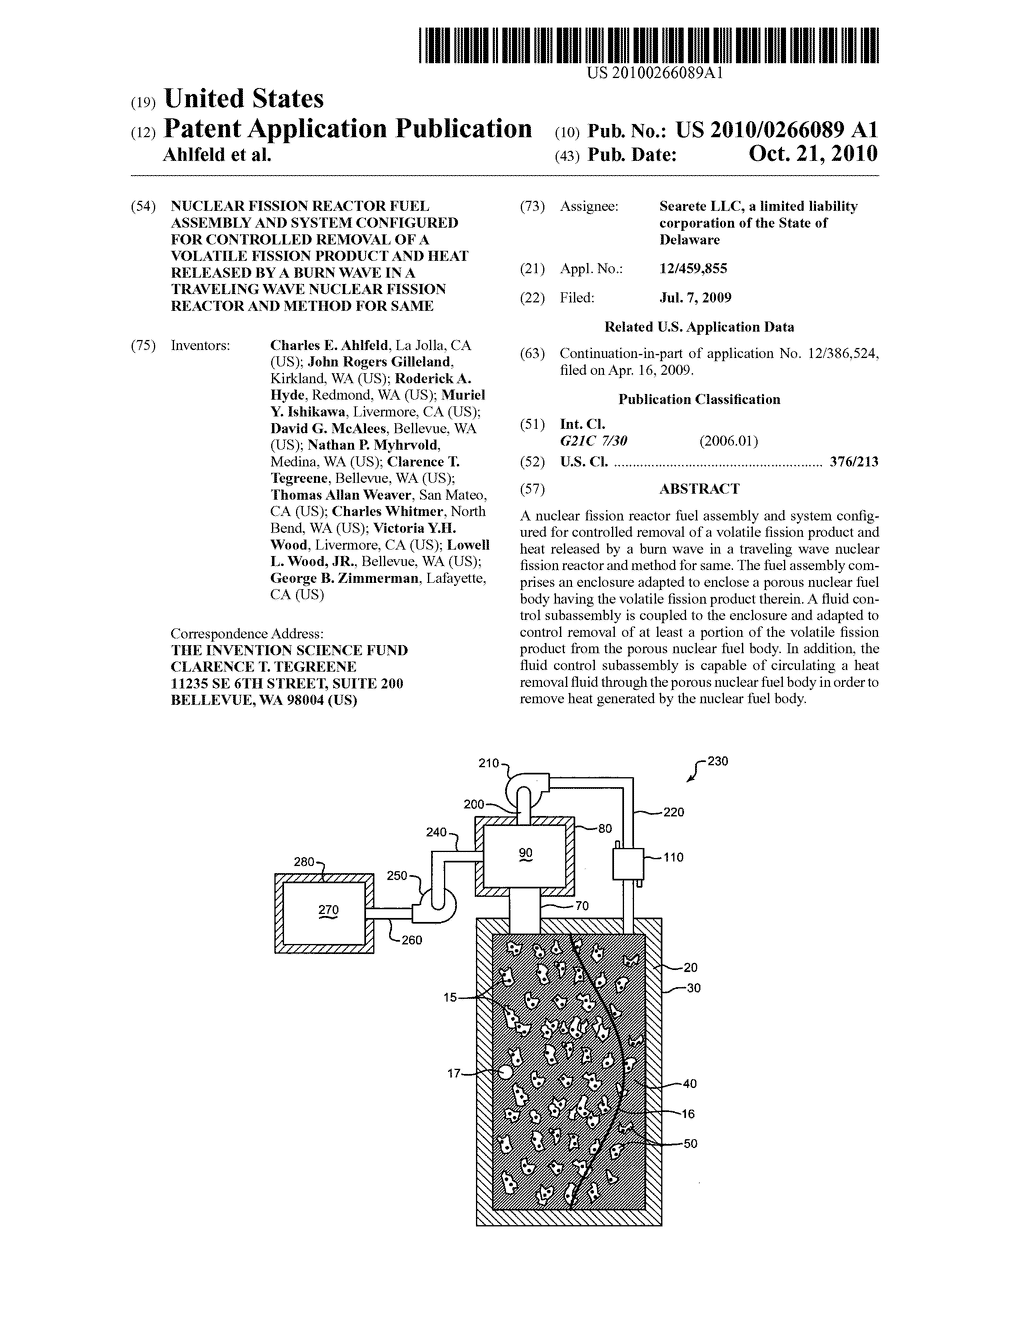 Nuclear fission reactor fuel assembly and system configured for controlled removal of a volatile fission product and heat released by a burn wave in a traveling wave nuclear fission reactor and method for same - diagram, schematic, and image 01